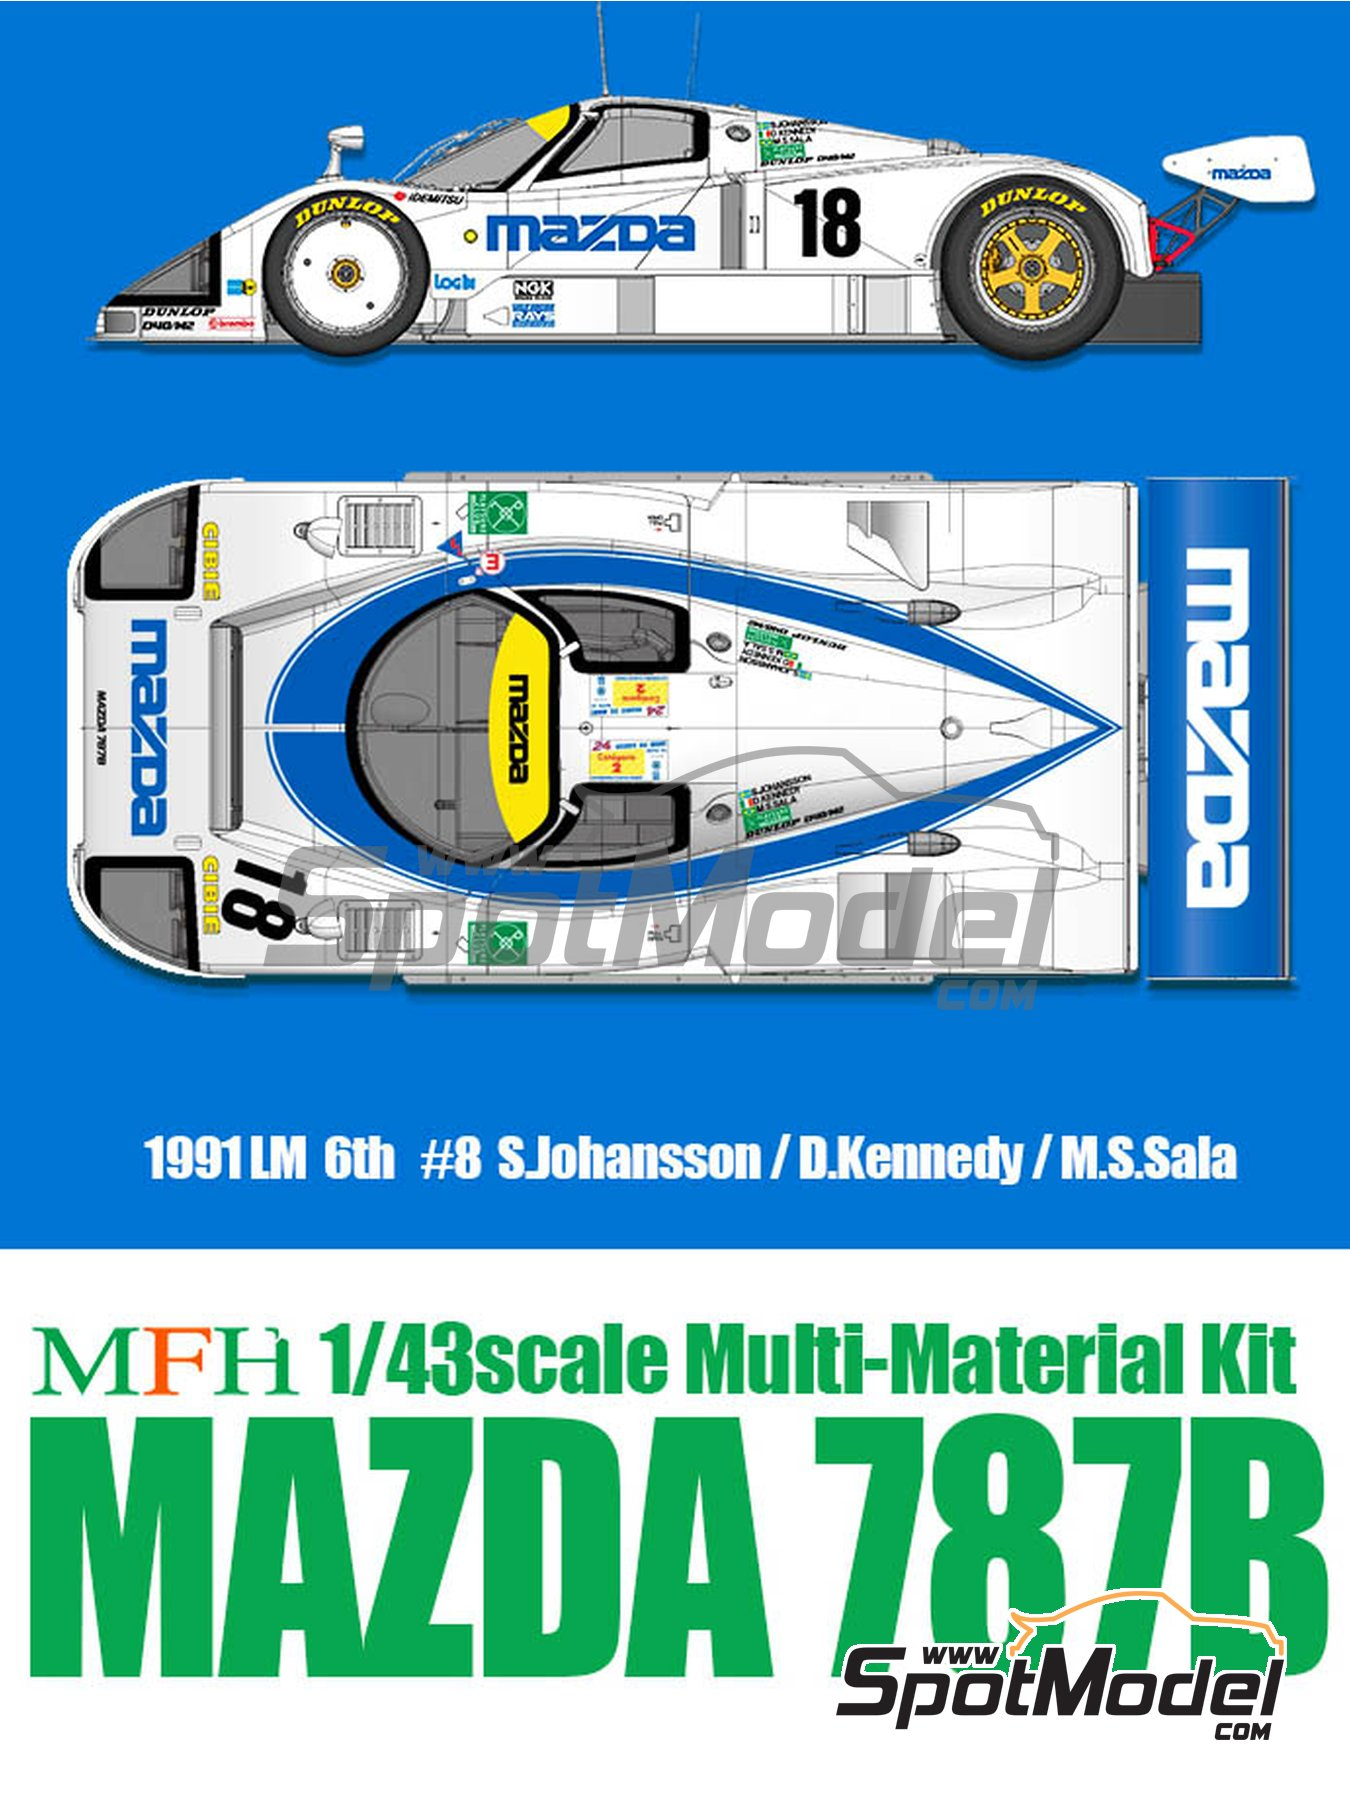 Mazda 787B Mazda - 24 Hours Le Mans 1991 | Model car kit in 1/43 scale manufactured by Model Factory Hiro (ref.MFH-K658) image